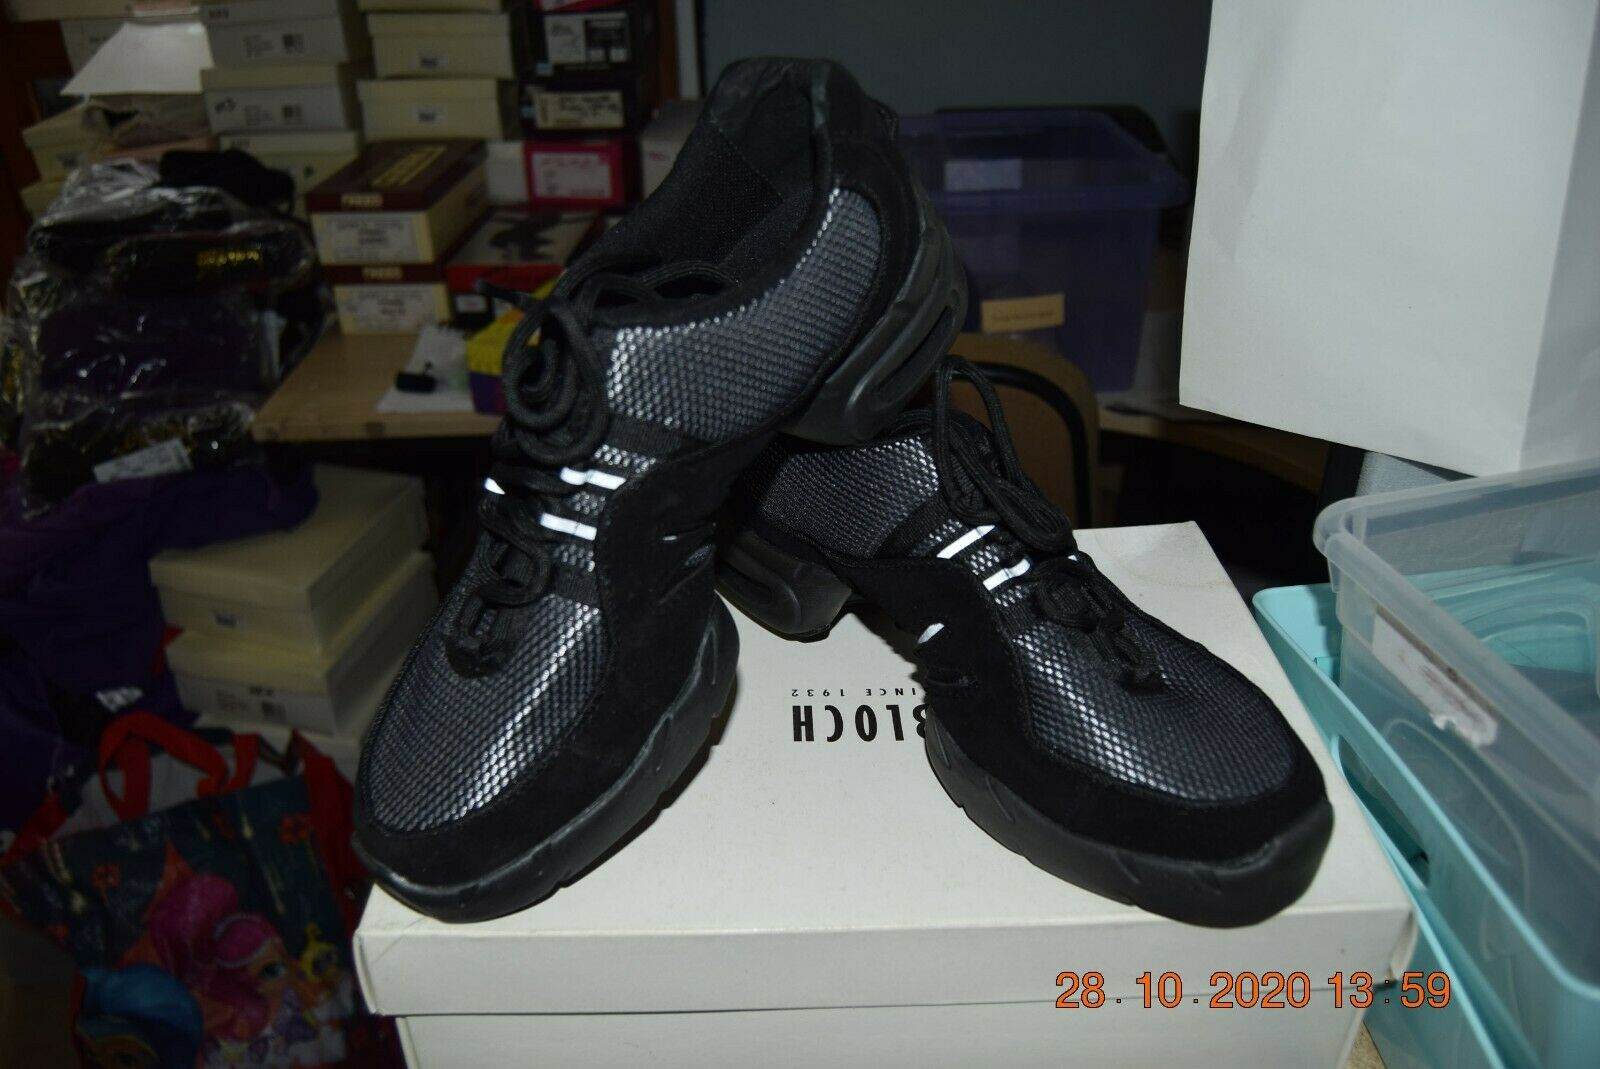 Black and Silver Bloch Boost SO538 jazz dance sneakers/trainers - size Adult 10